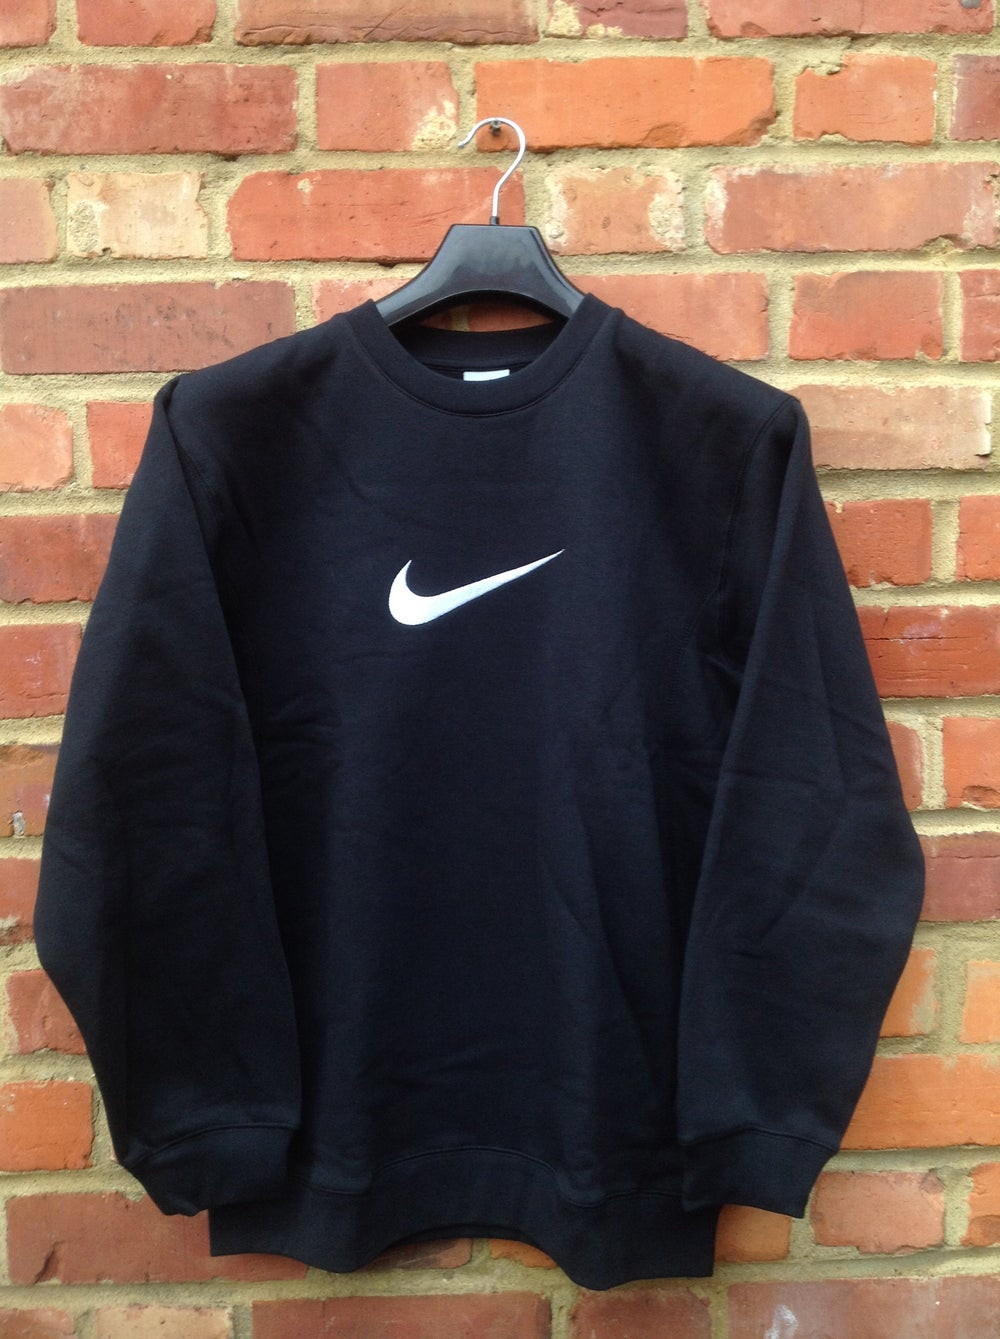 Image of RARE NEW BLACK VINTAGE NIKE SWEATSHIRT SIZE SMALL SIZE 8/10/12 PM